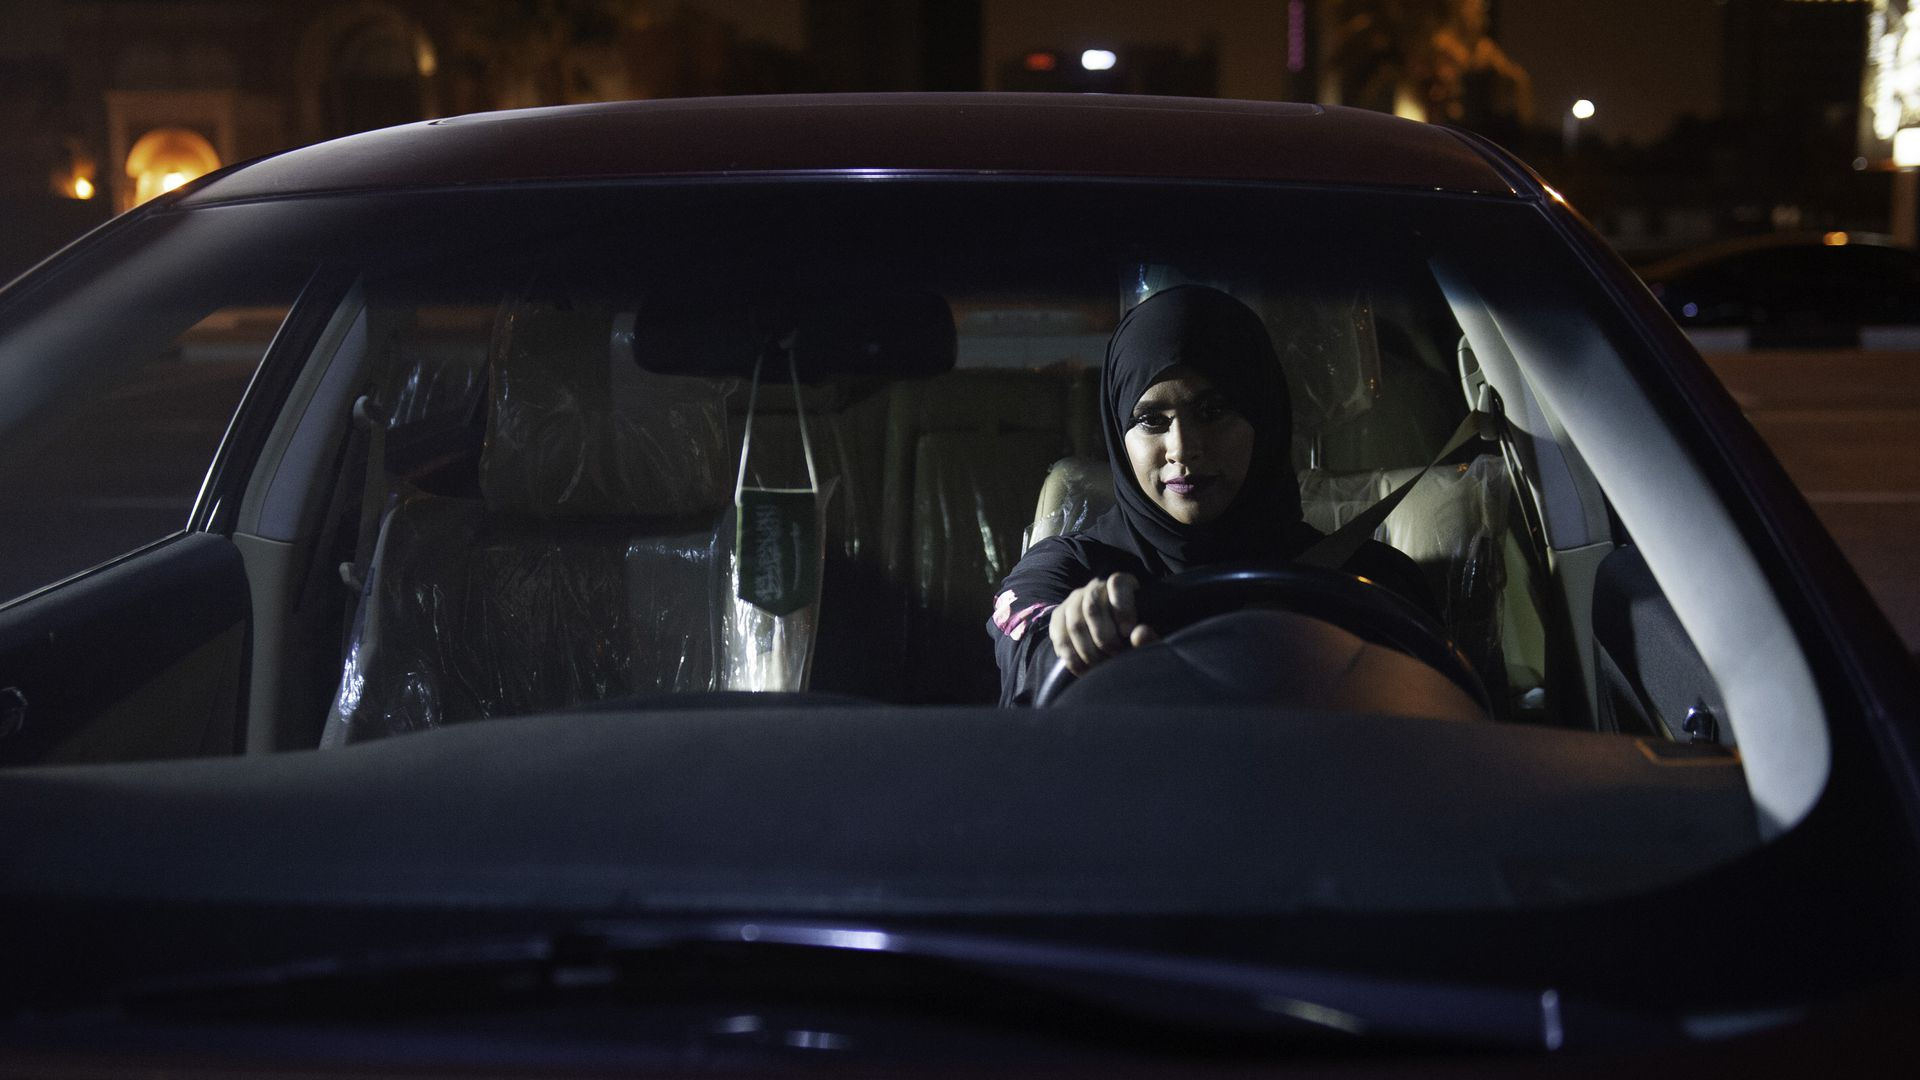 Saudi Arabian woman driving.